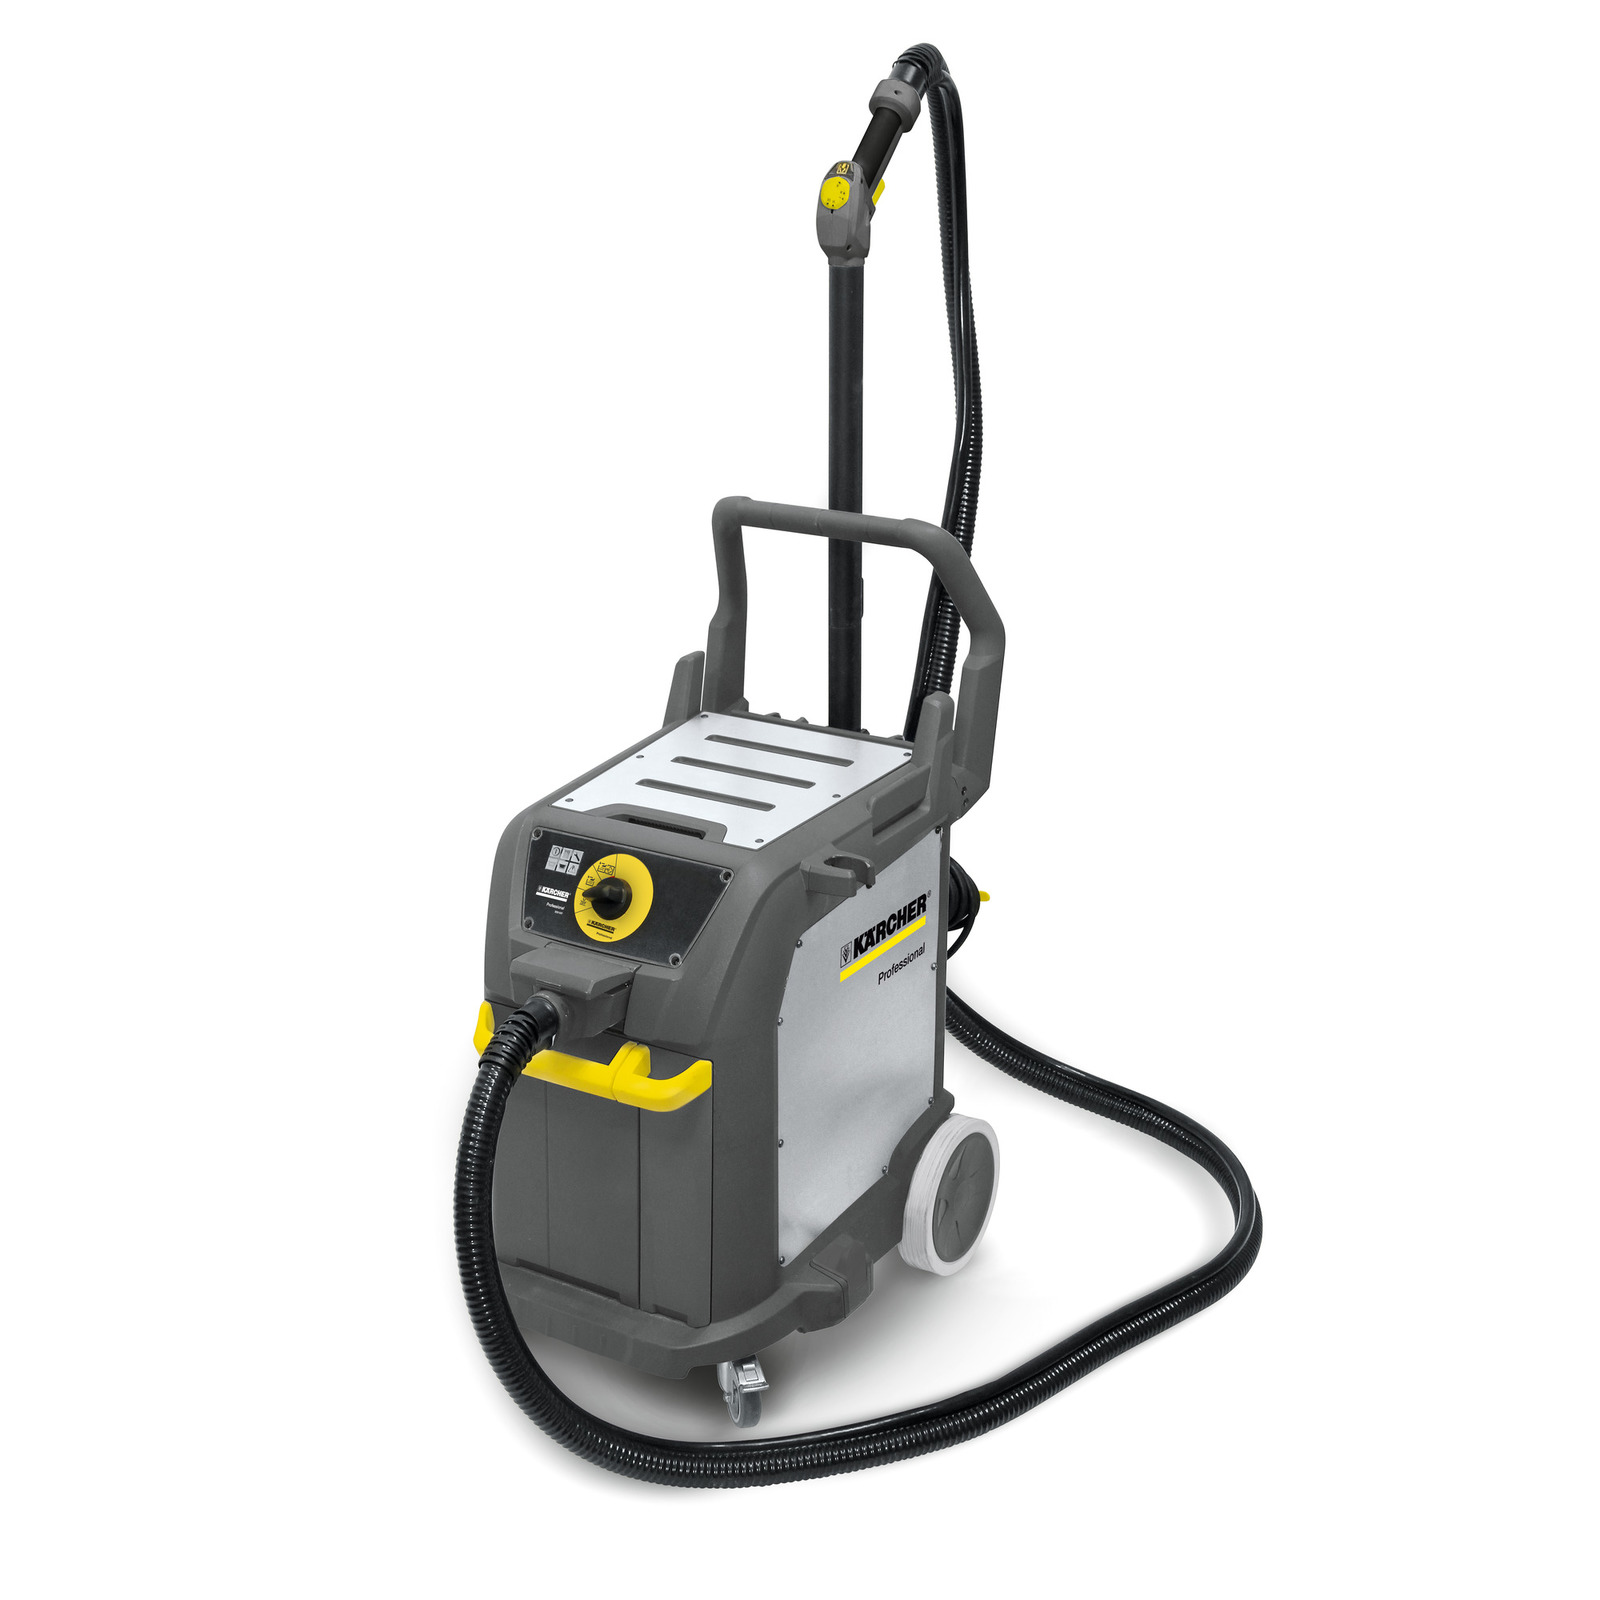 Karcher_1.092-002.0_SGV-6-5 Steam Vacuum Cleaner 1 - SGV 6/5 Steam Vacuum Cleaner